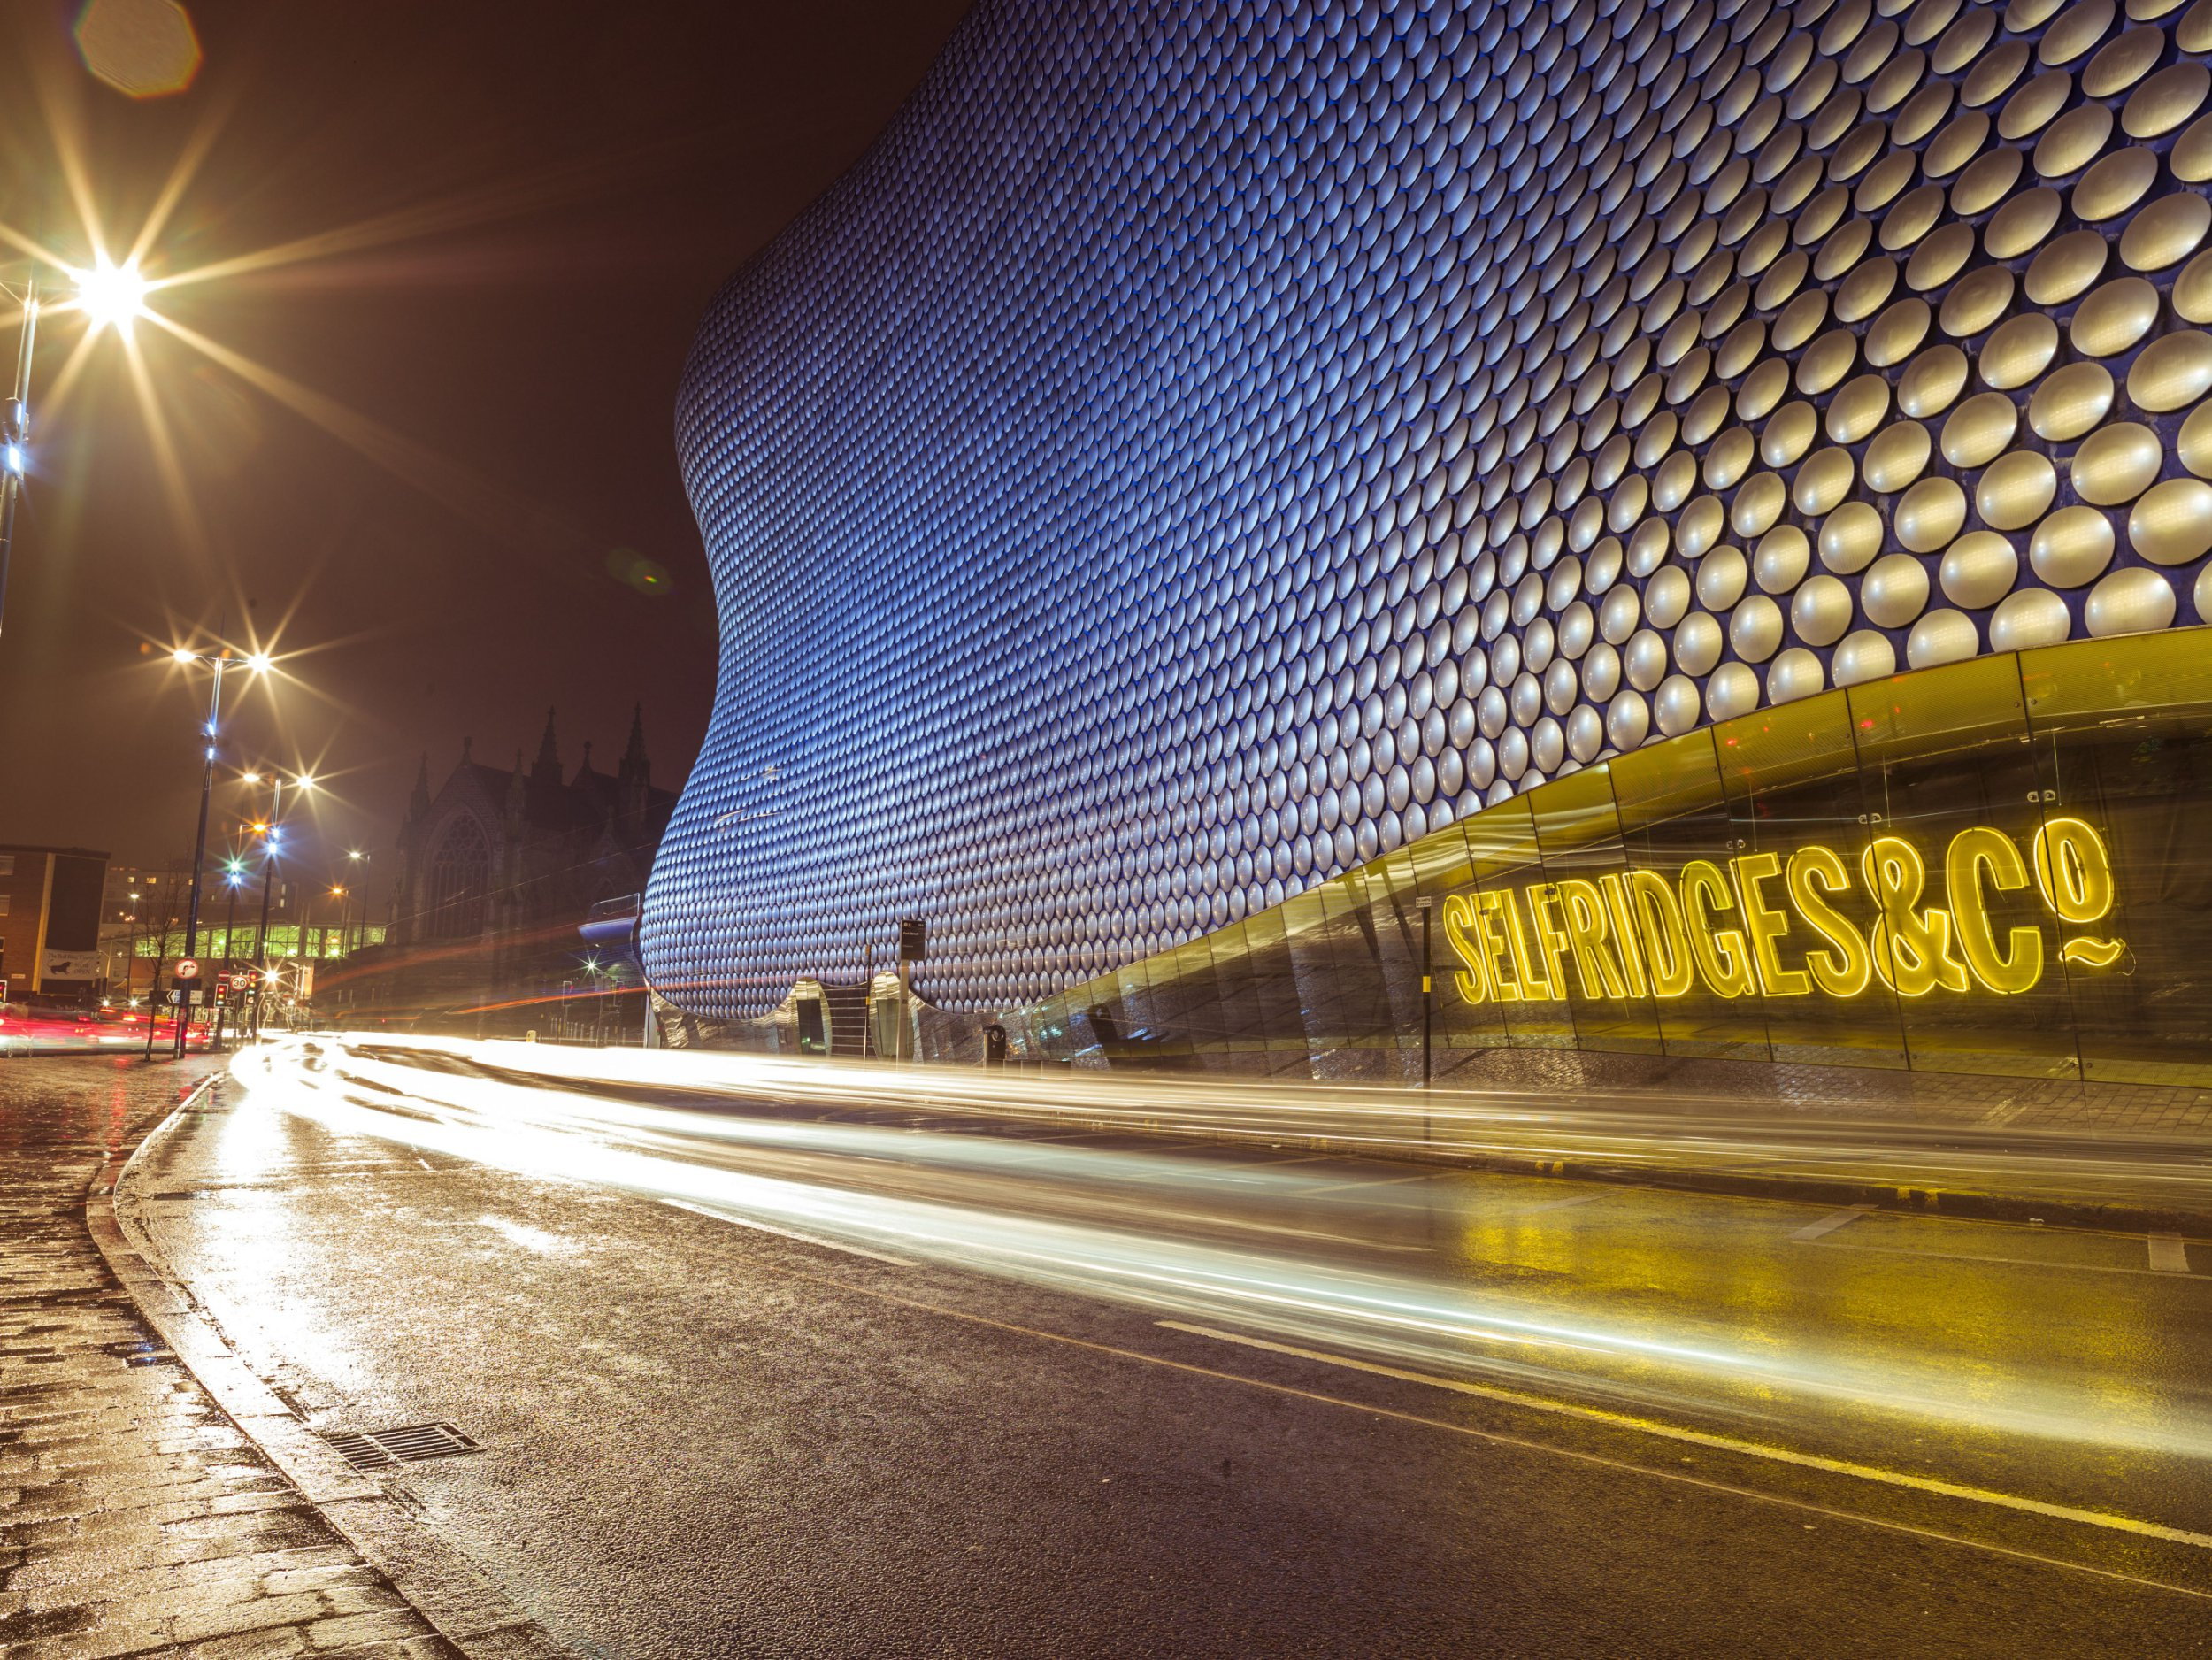 EDITORIAL USE ONLY : CONSENT REQUIRED FOR COMMERCIAL USE Mandatory Credit: Photo by Best Shot Factory/REX/Shutterstock (5570605a) Famous Selfridges shopping mall in Bullring, Birmingham, UK VARIOUS